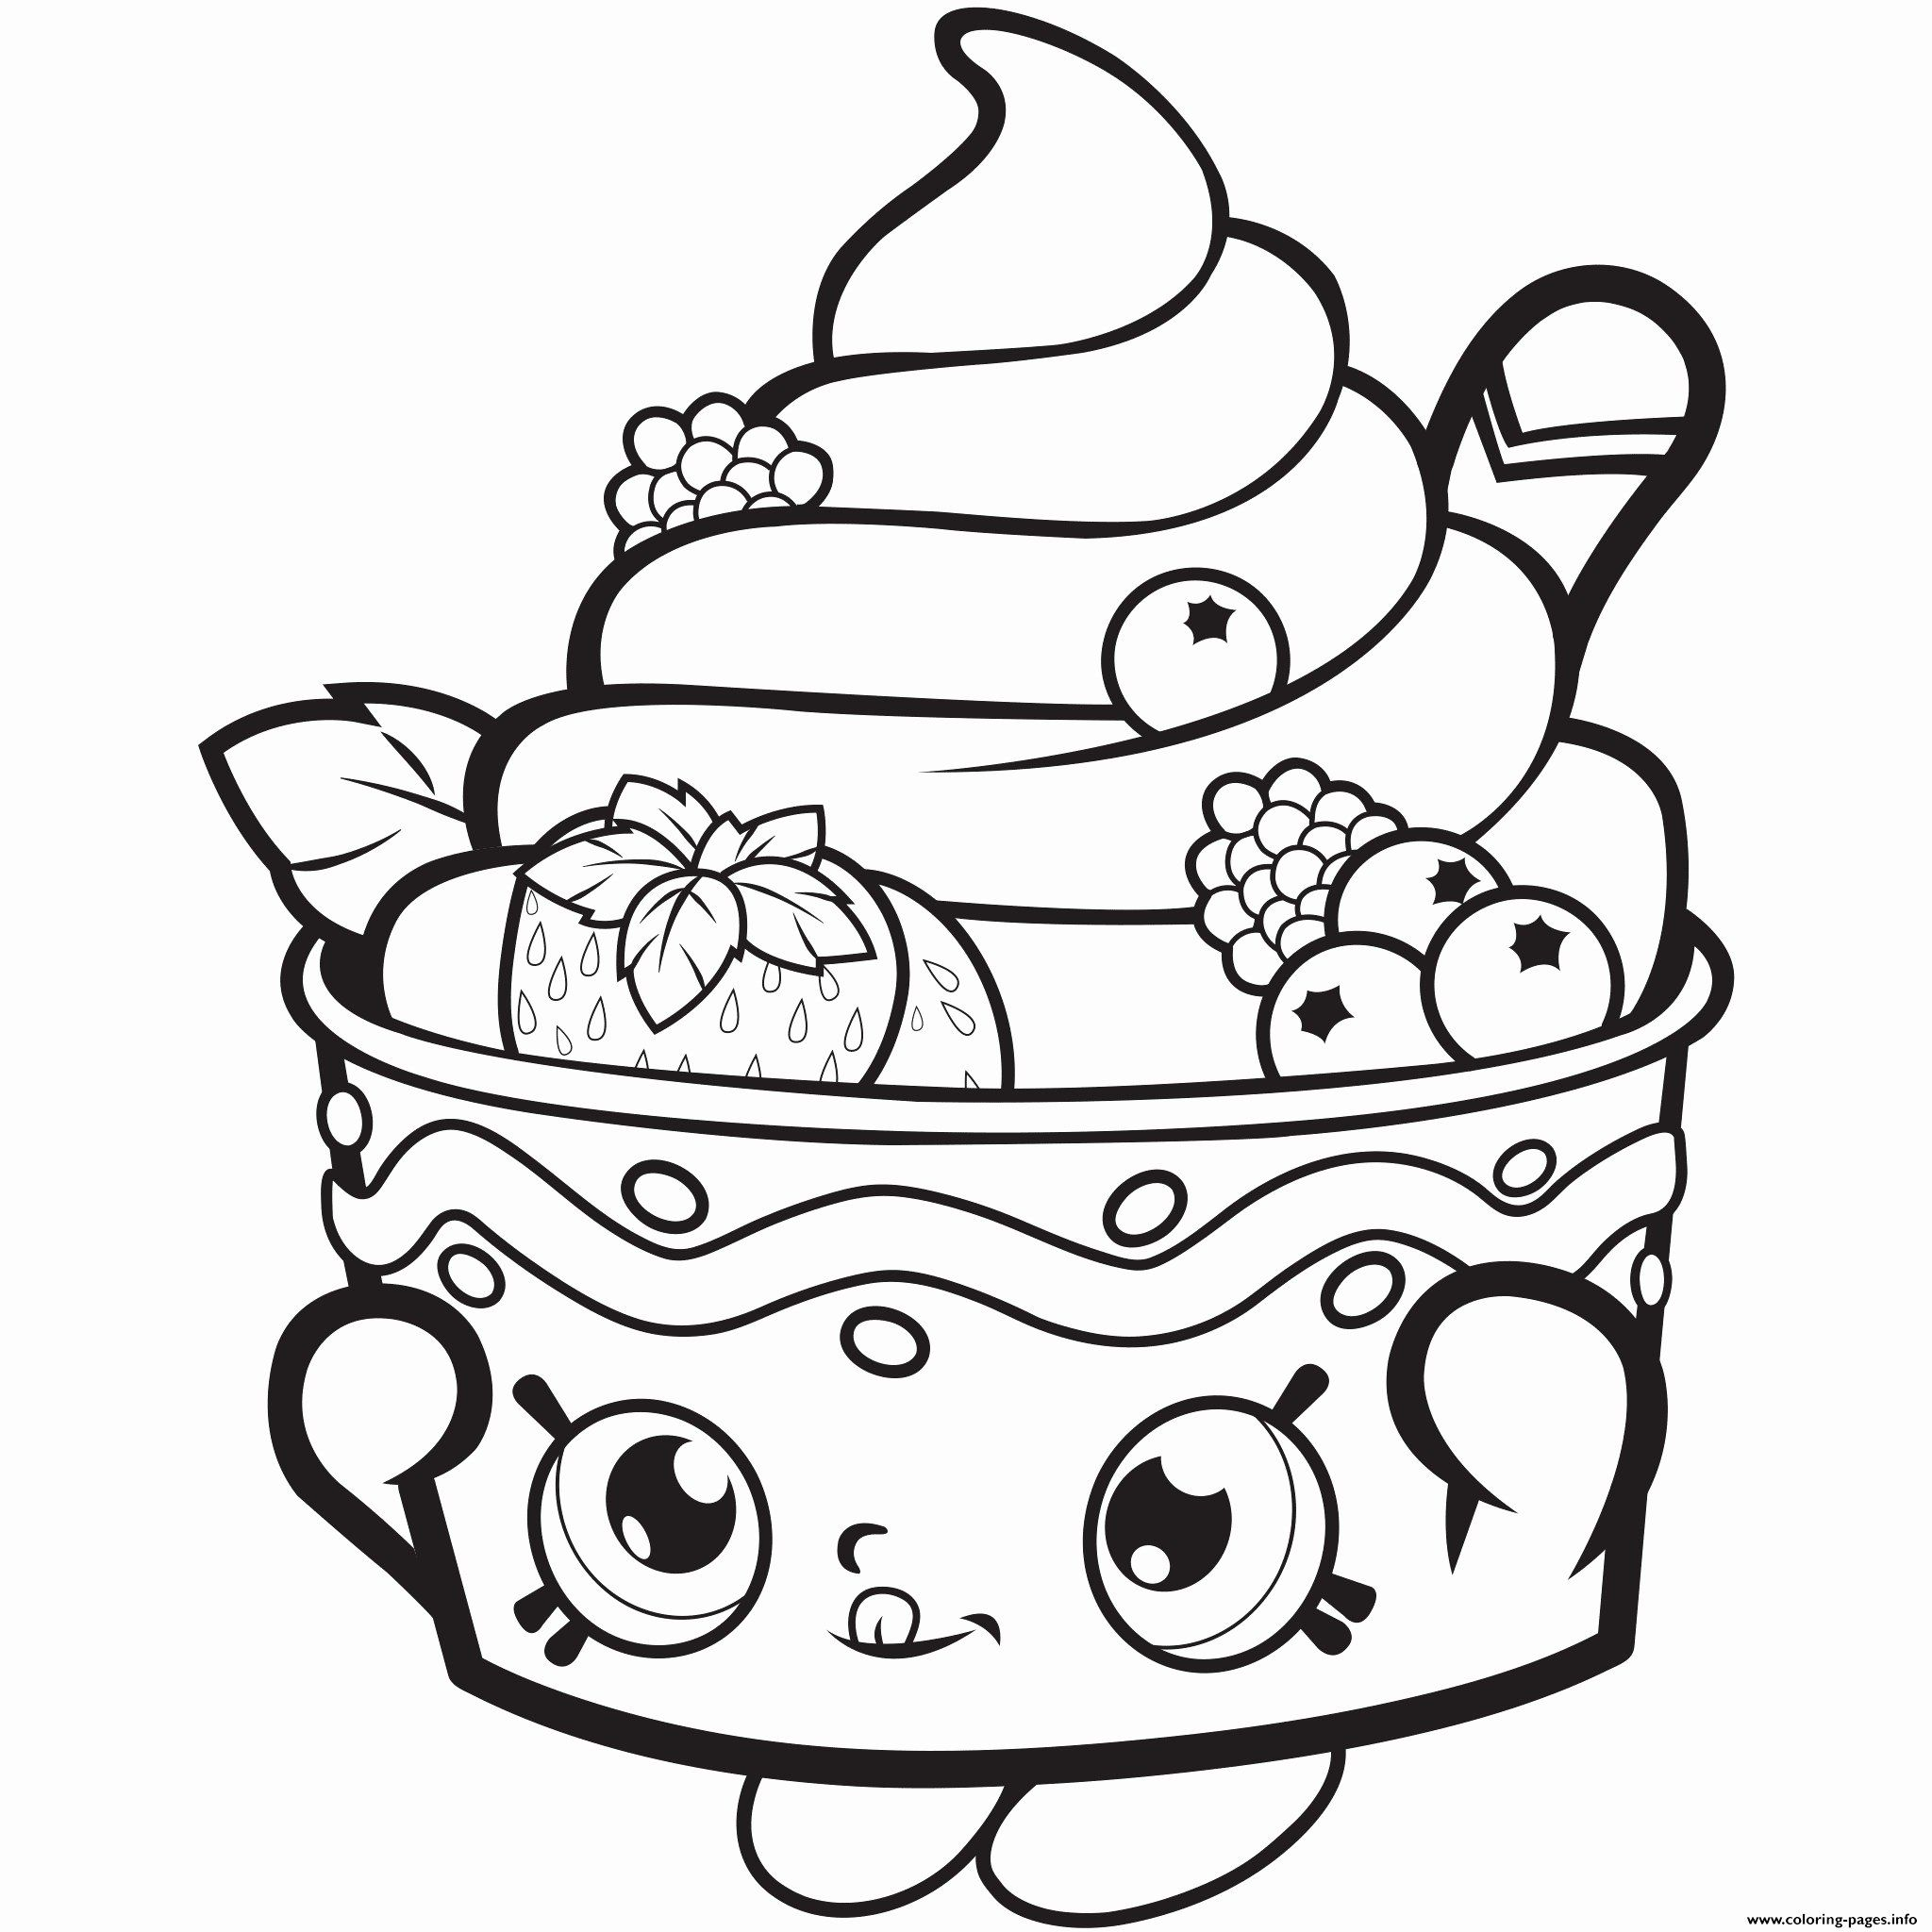 Disney Emoji Coloring Pages New Coloring Design Unique Coloring Books Printabl Turtle Coloring Pages Shopkins Coloring Pages Free Printable Free Coloring Pages